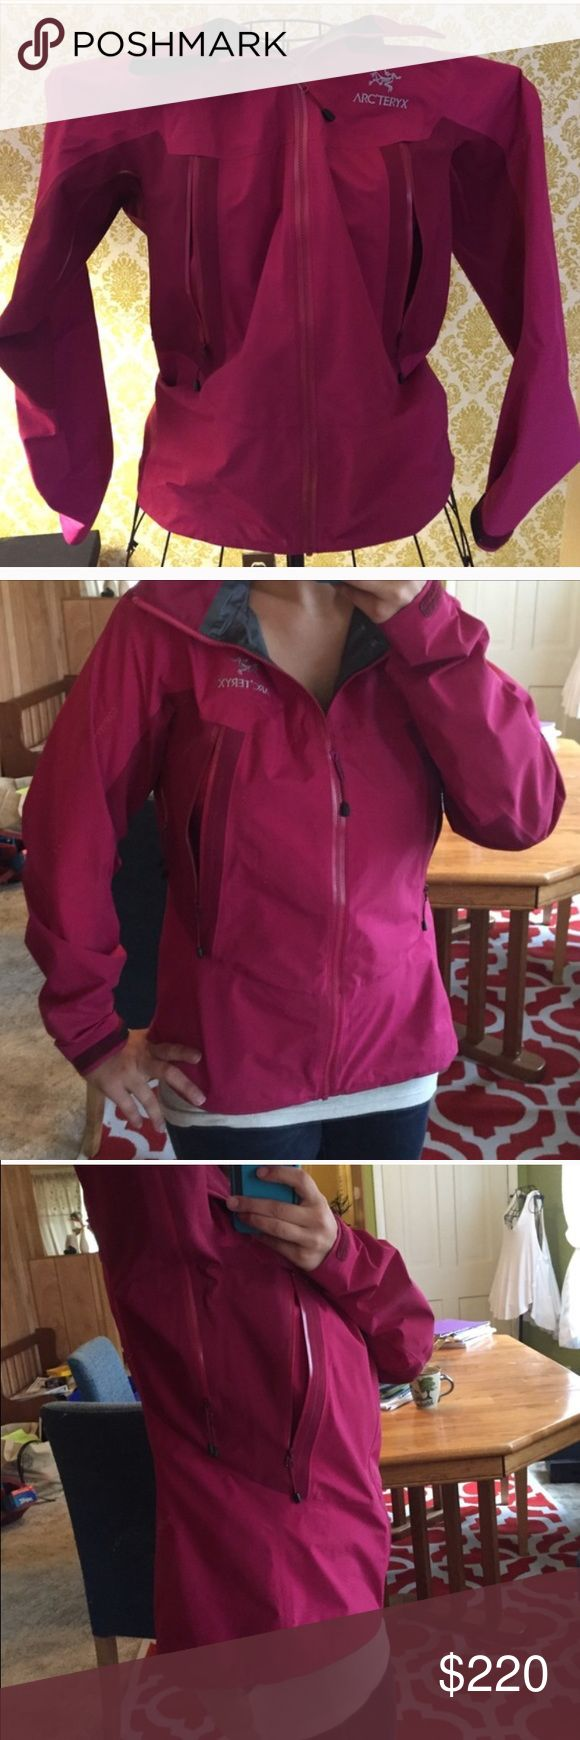 Arc'teryx Beta LT hoodie size medium No flaws like new condition I have too many jackets and must downsize! This is best brand ever! I believe this is the beta light will check online too see for sure, retails for 525 new!! Arc'teryx Jackets & Coats